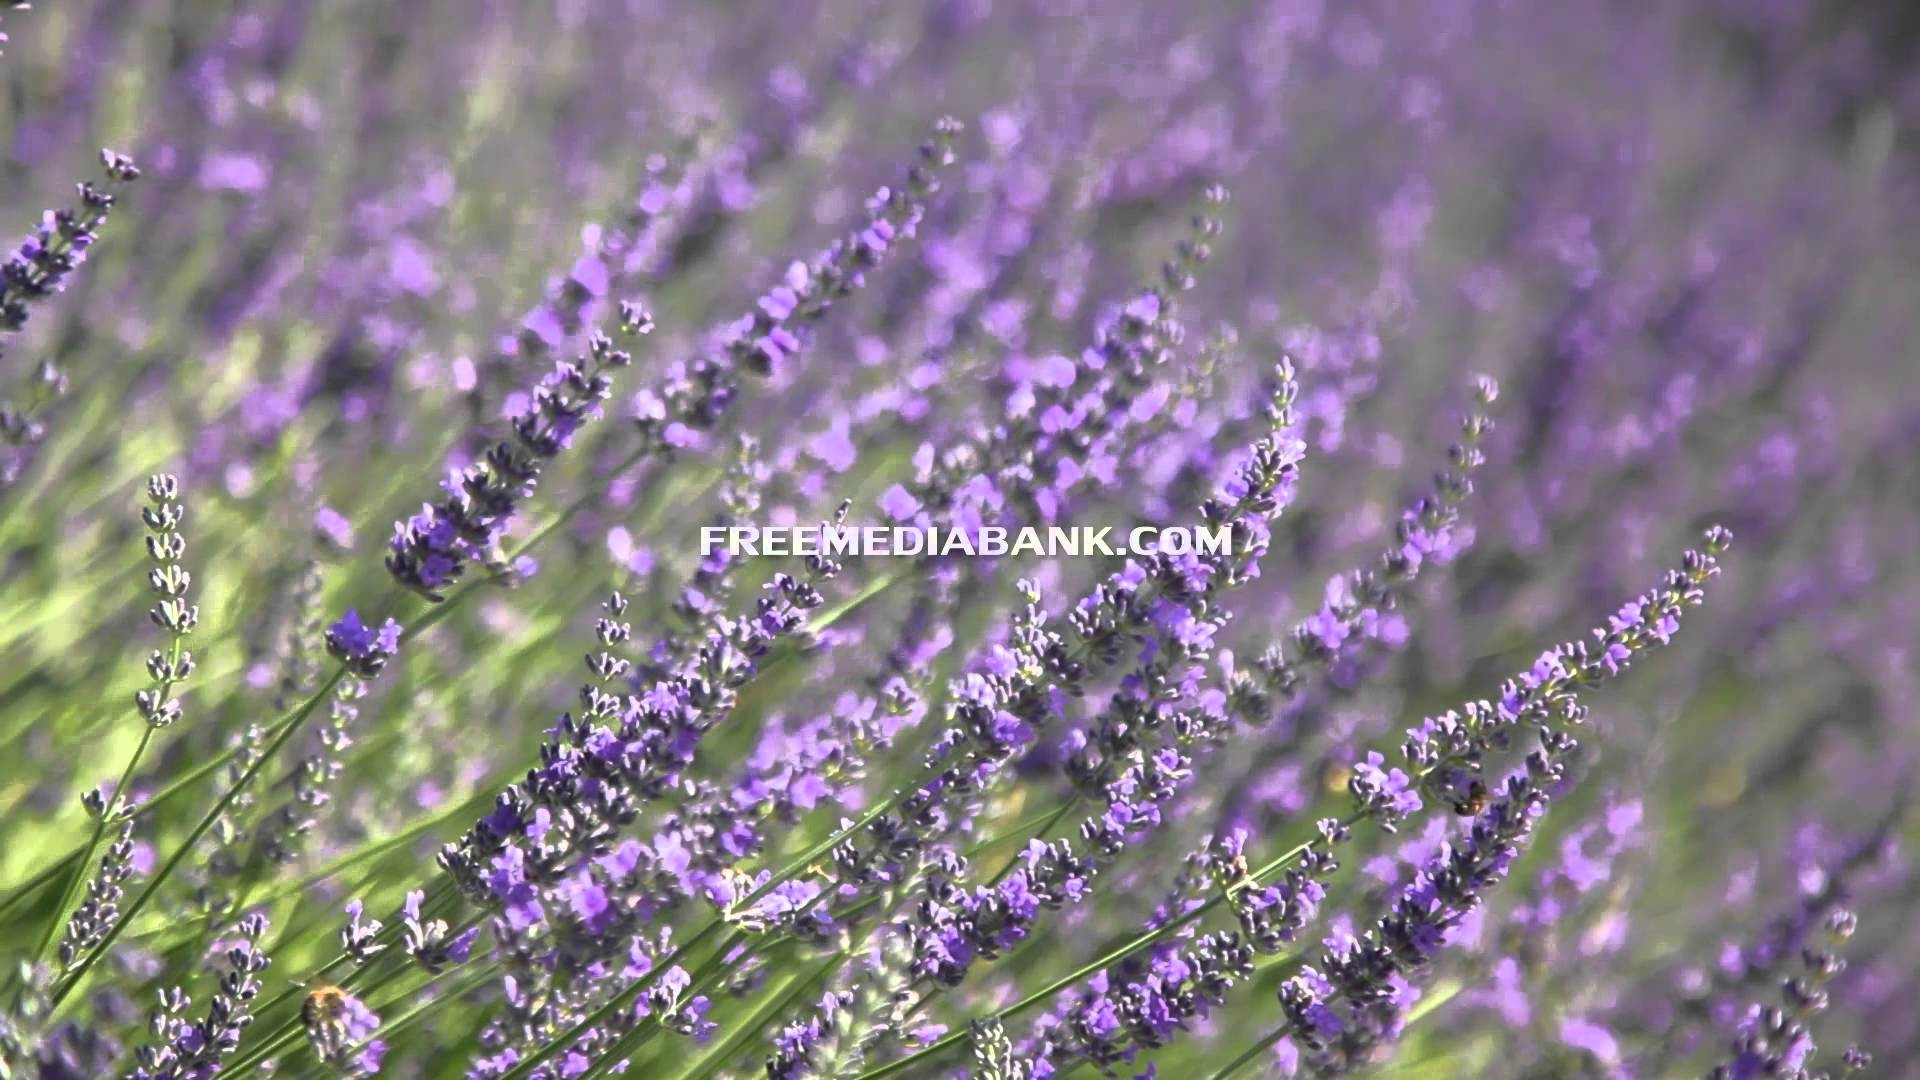 Lavender blooming photo